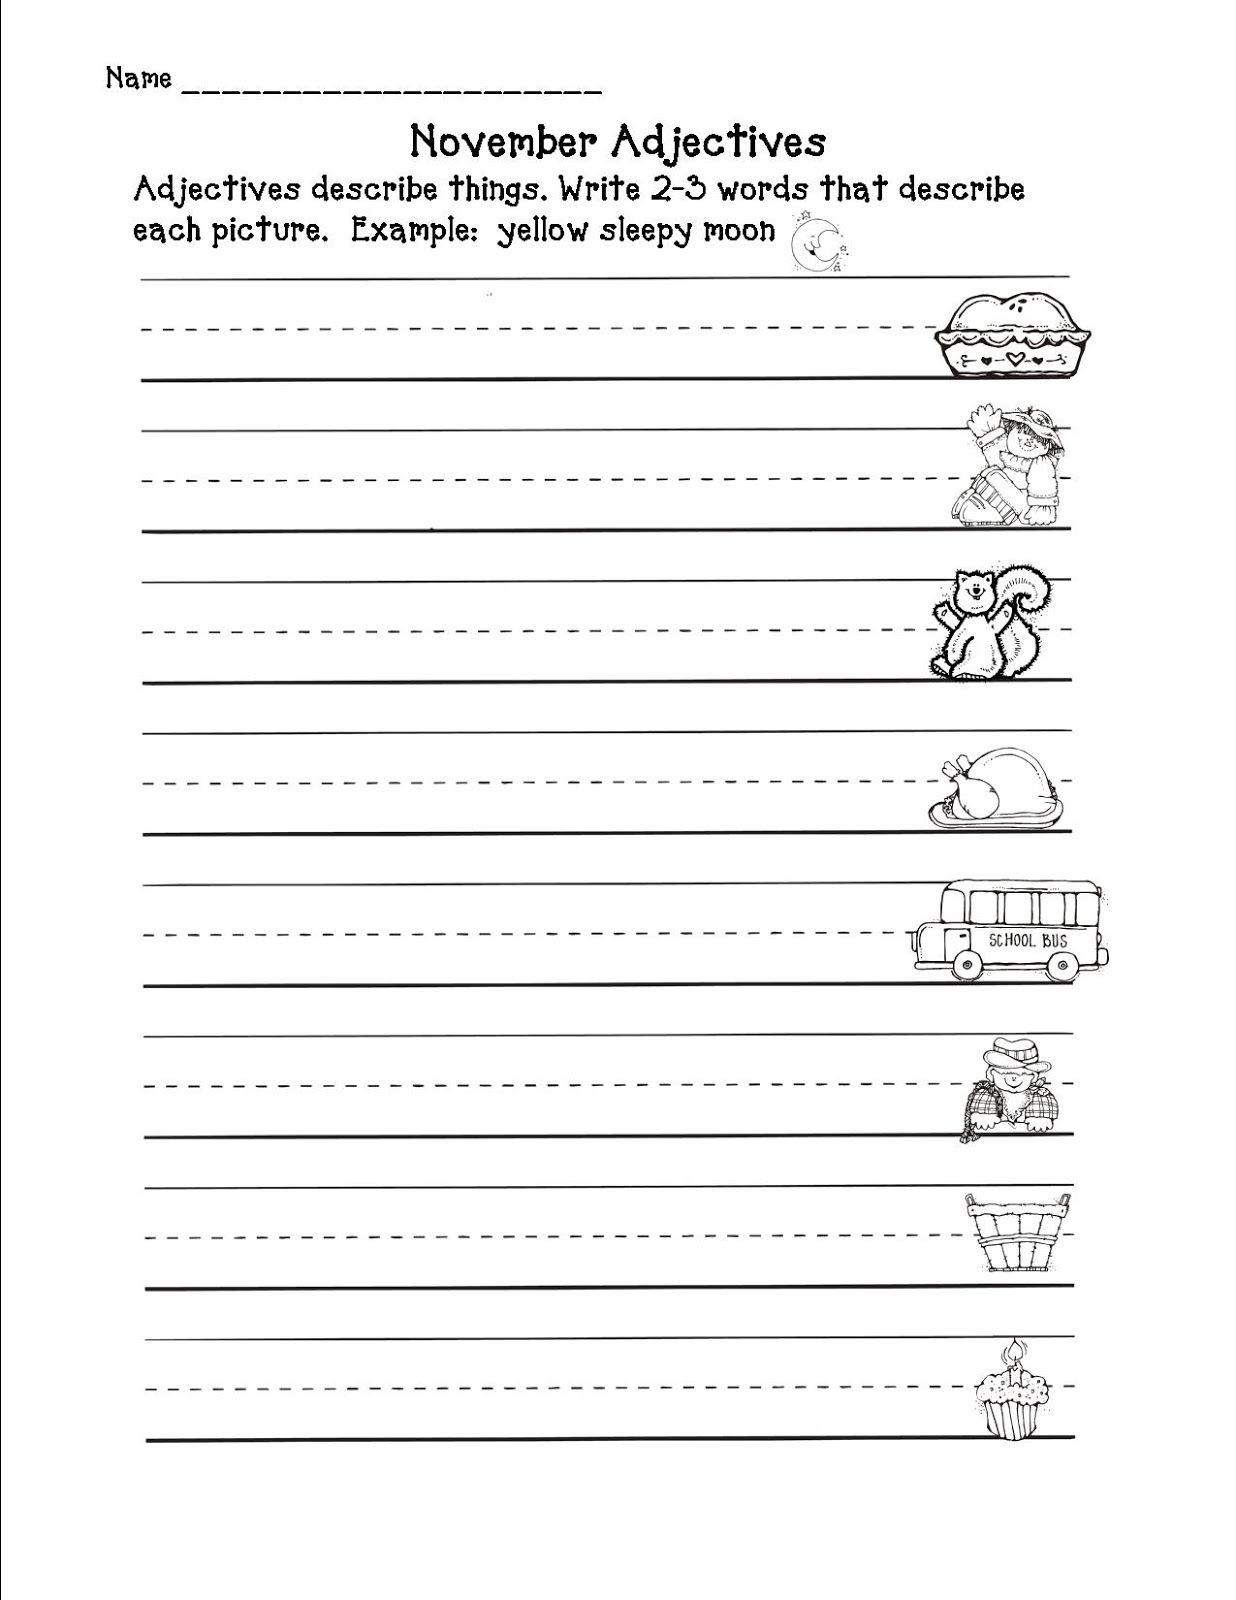 Adjective Worksheets 2nd Grade E More Newbie for My Store